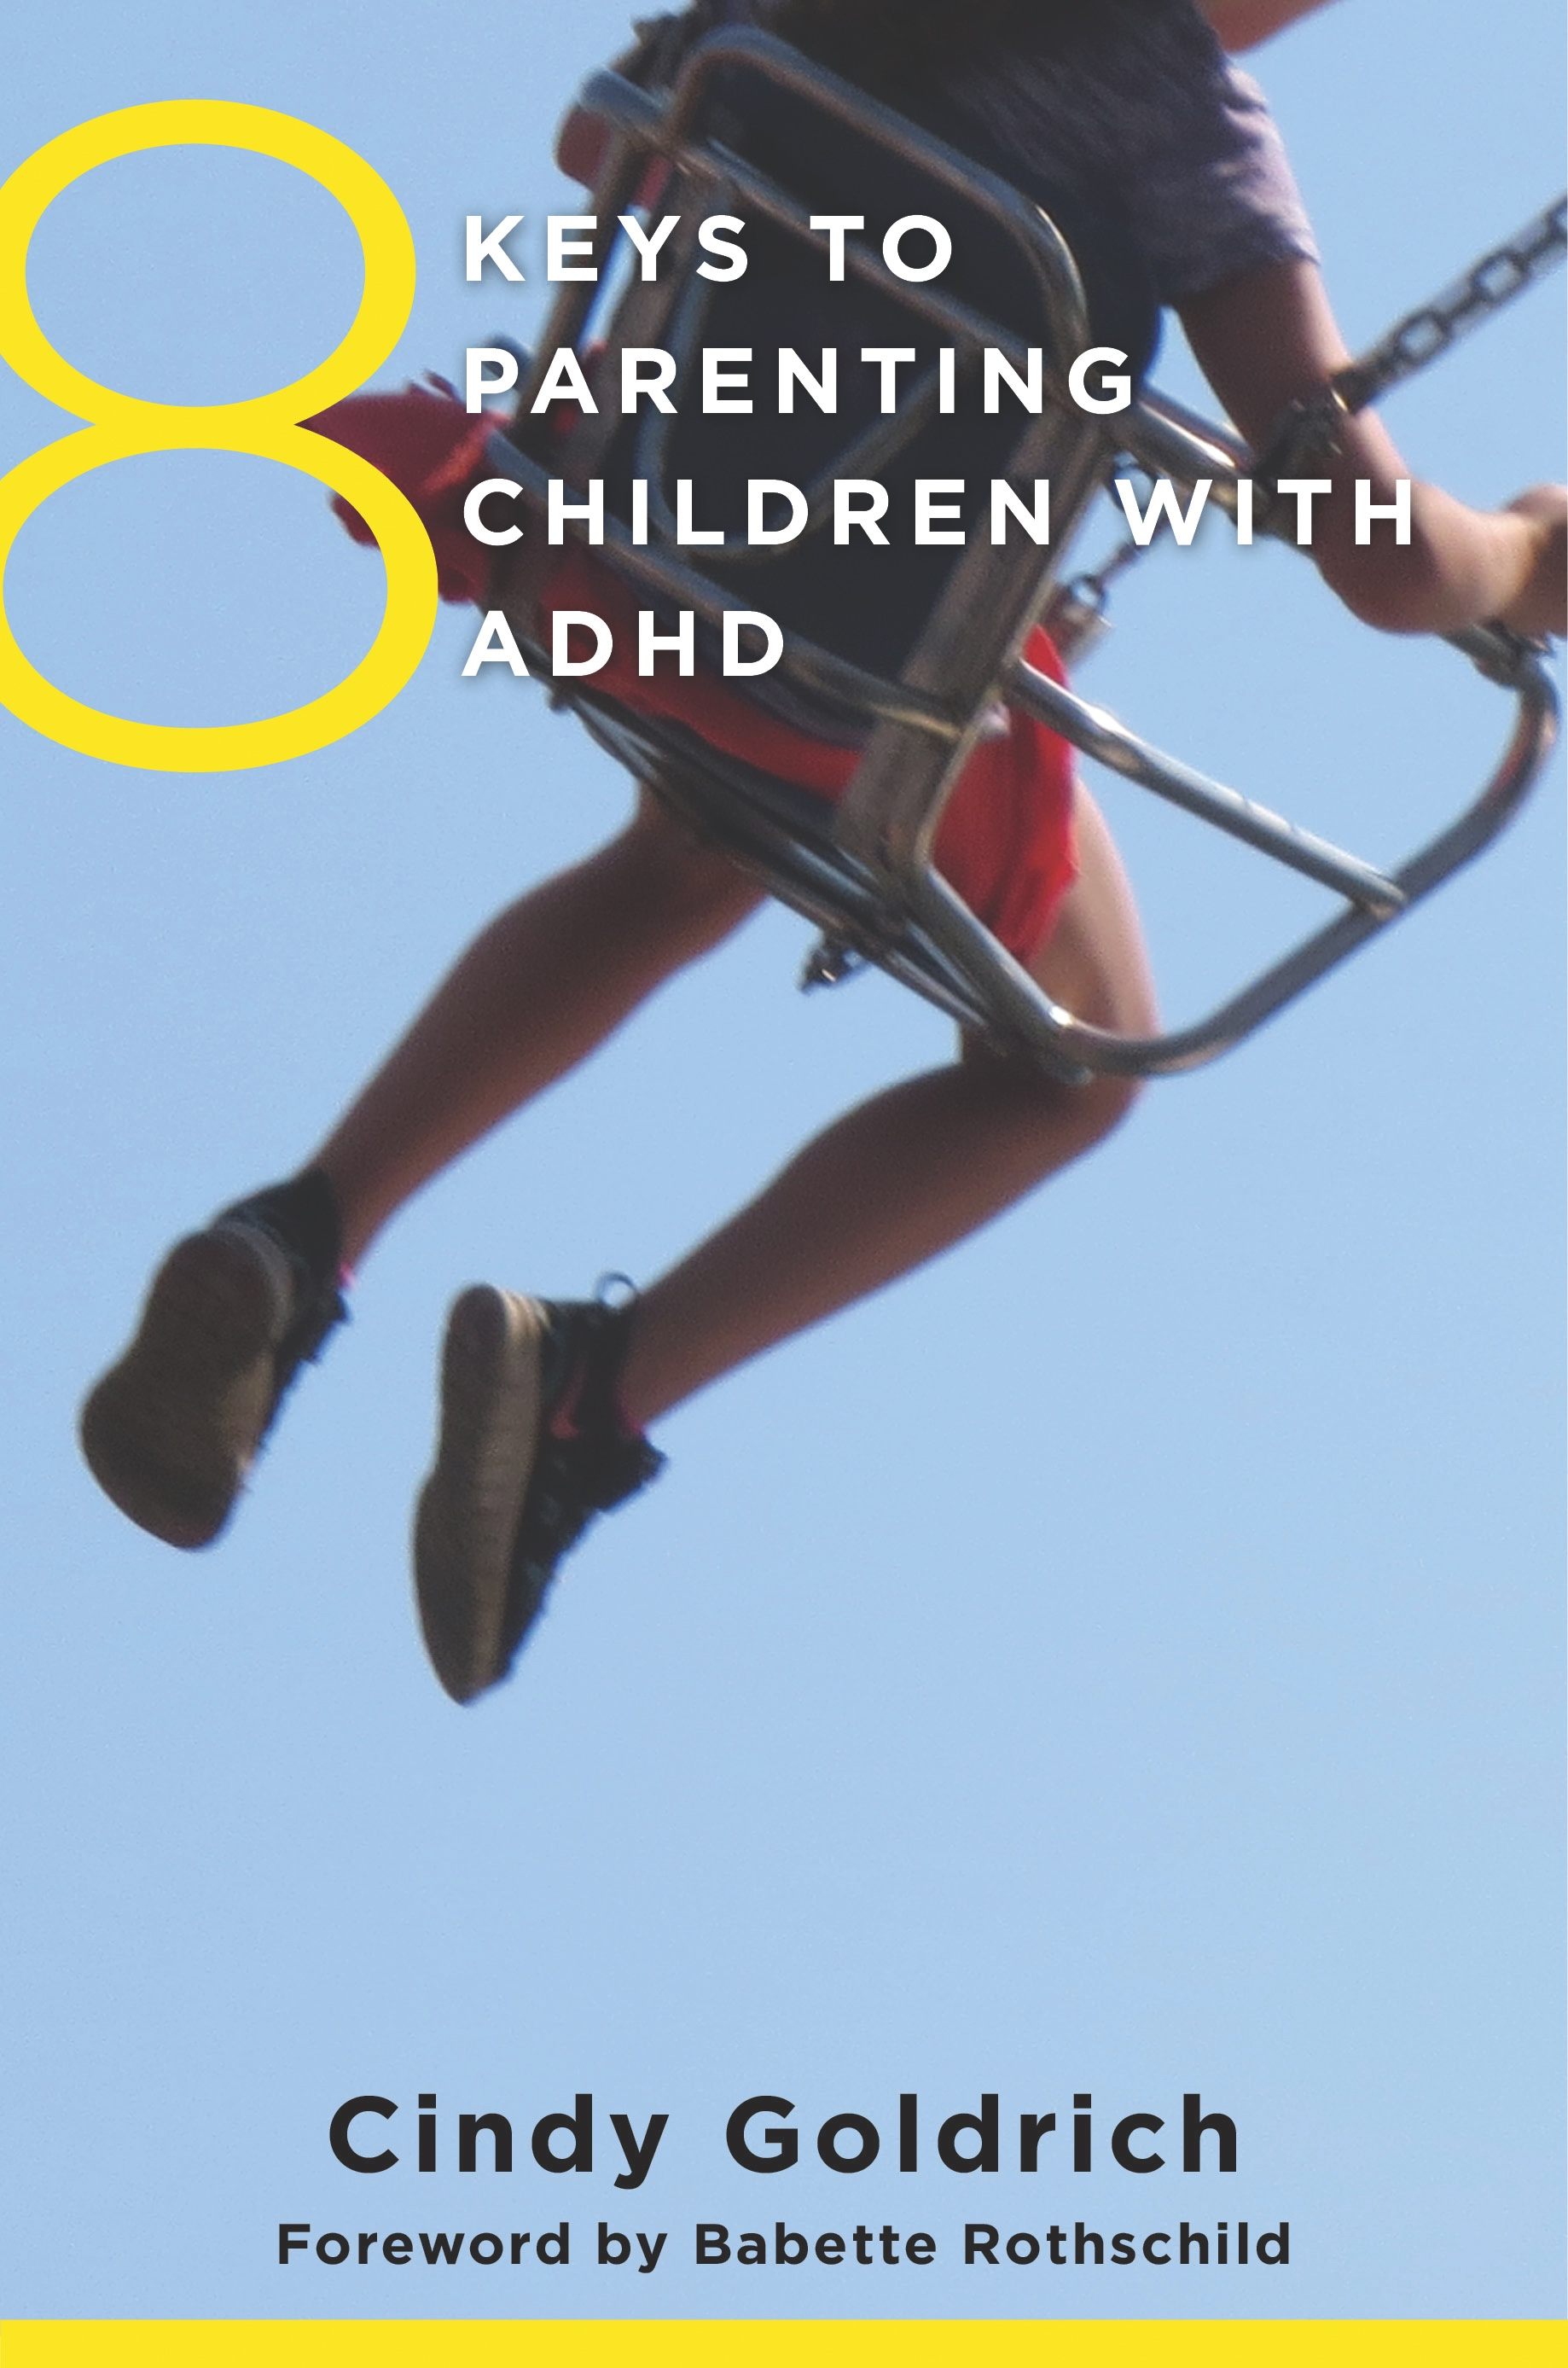 8 Keys to Parenting Children with ADHD (1)